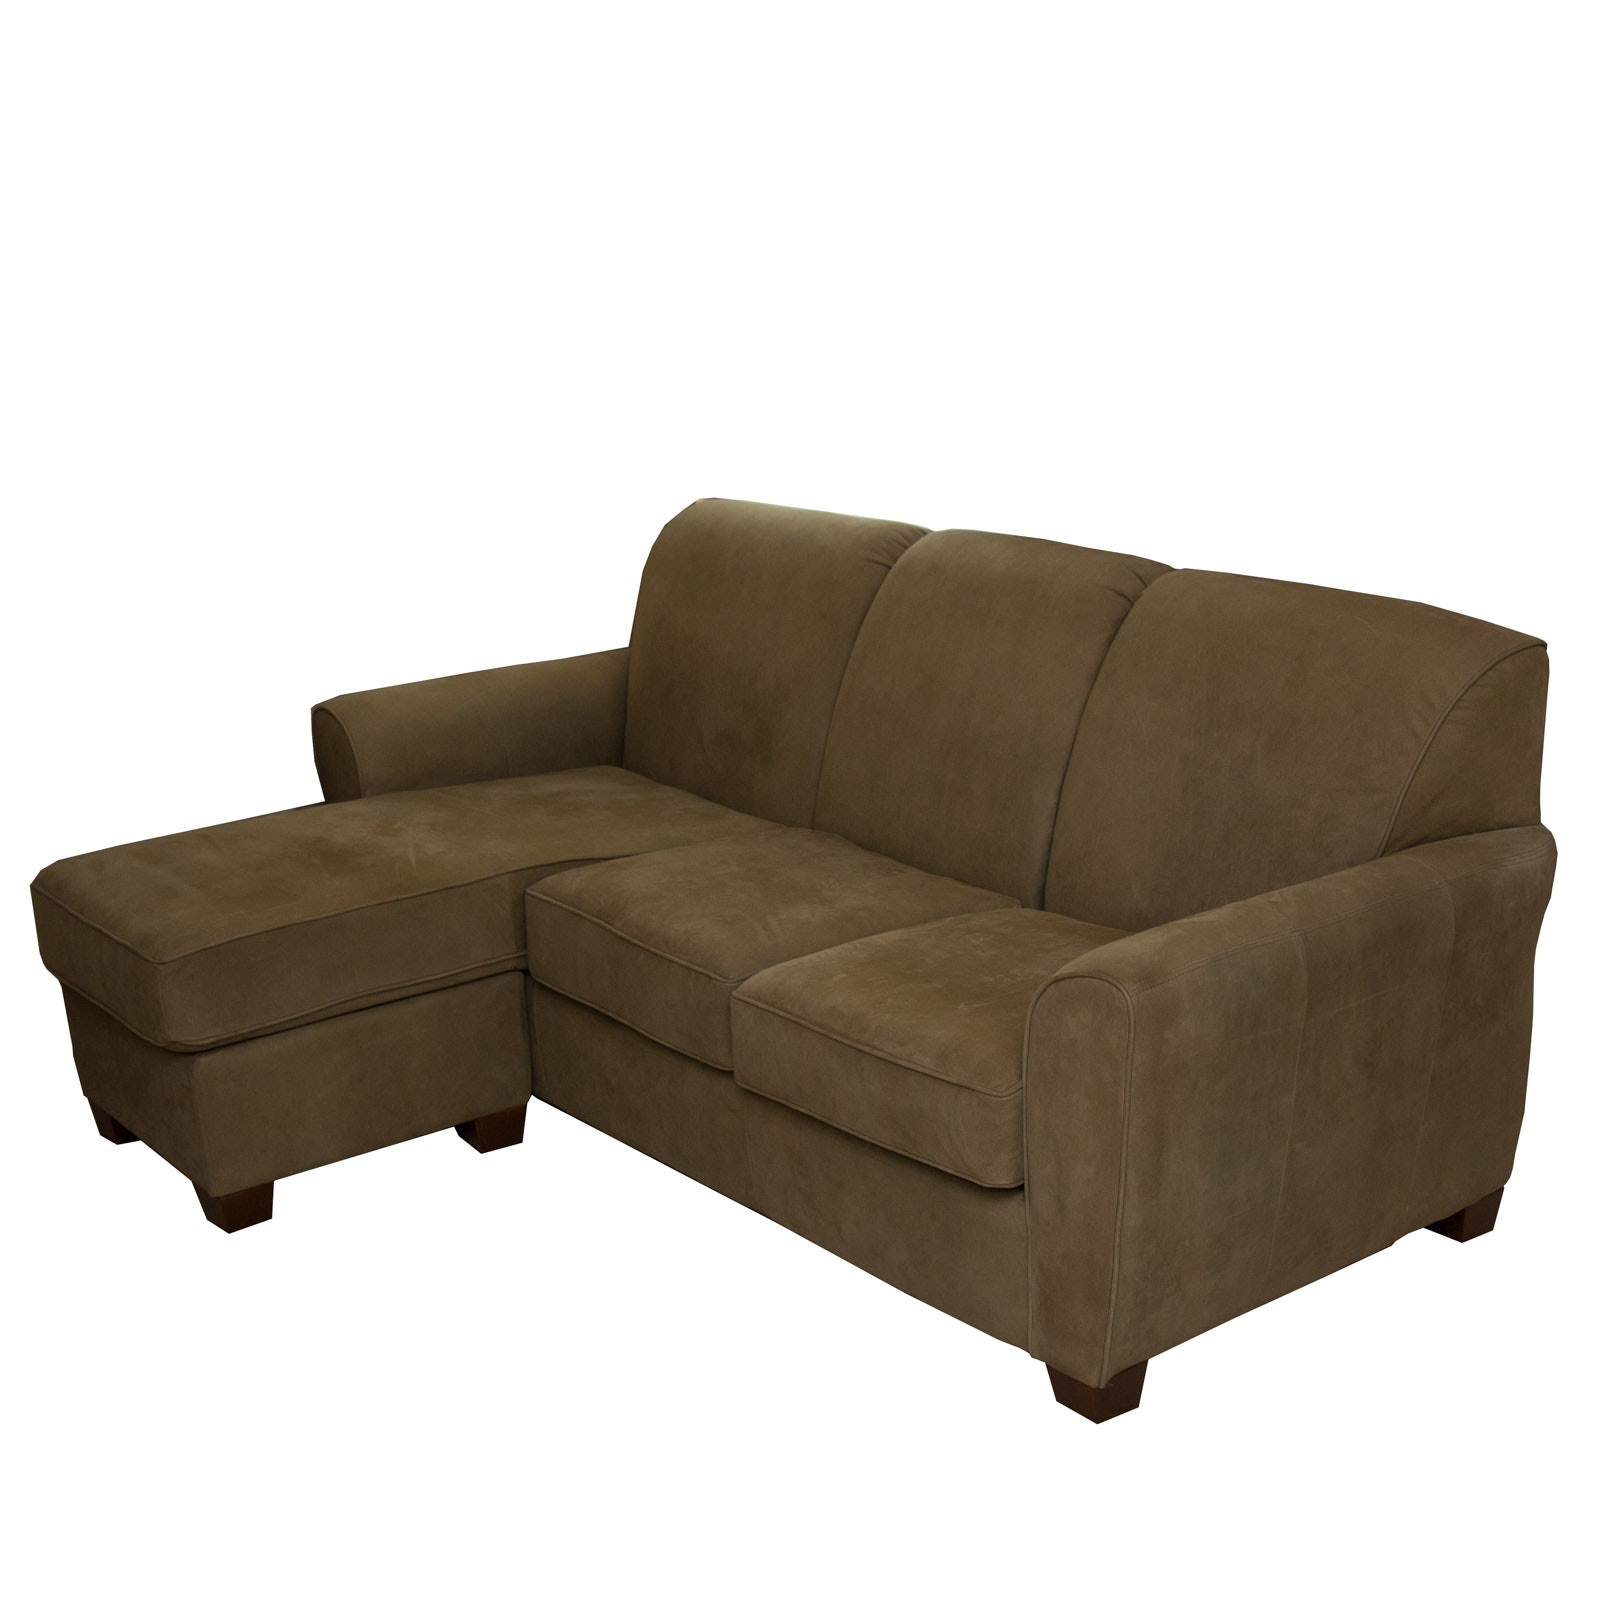 L-Shaped Beige Sectional Sofa